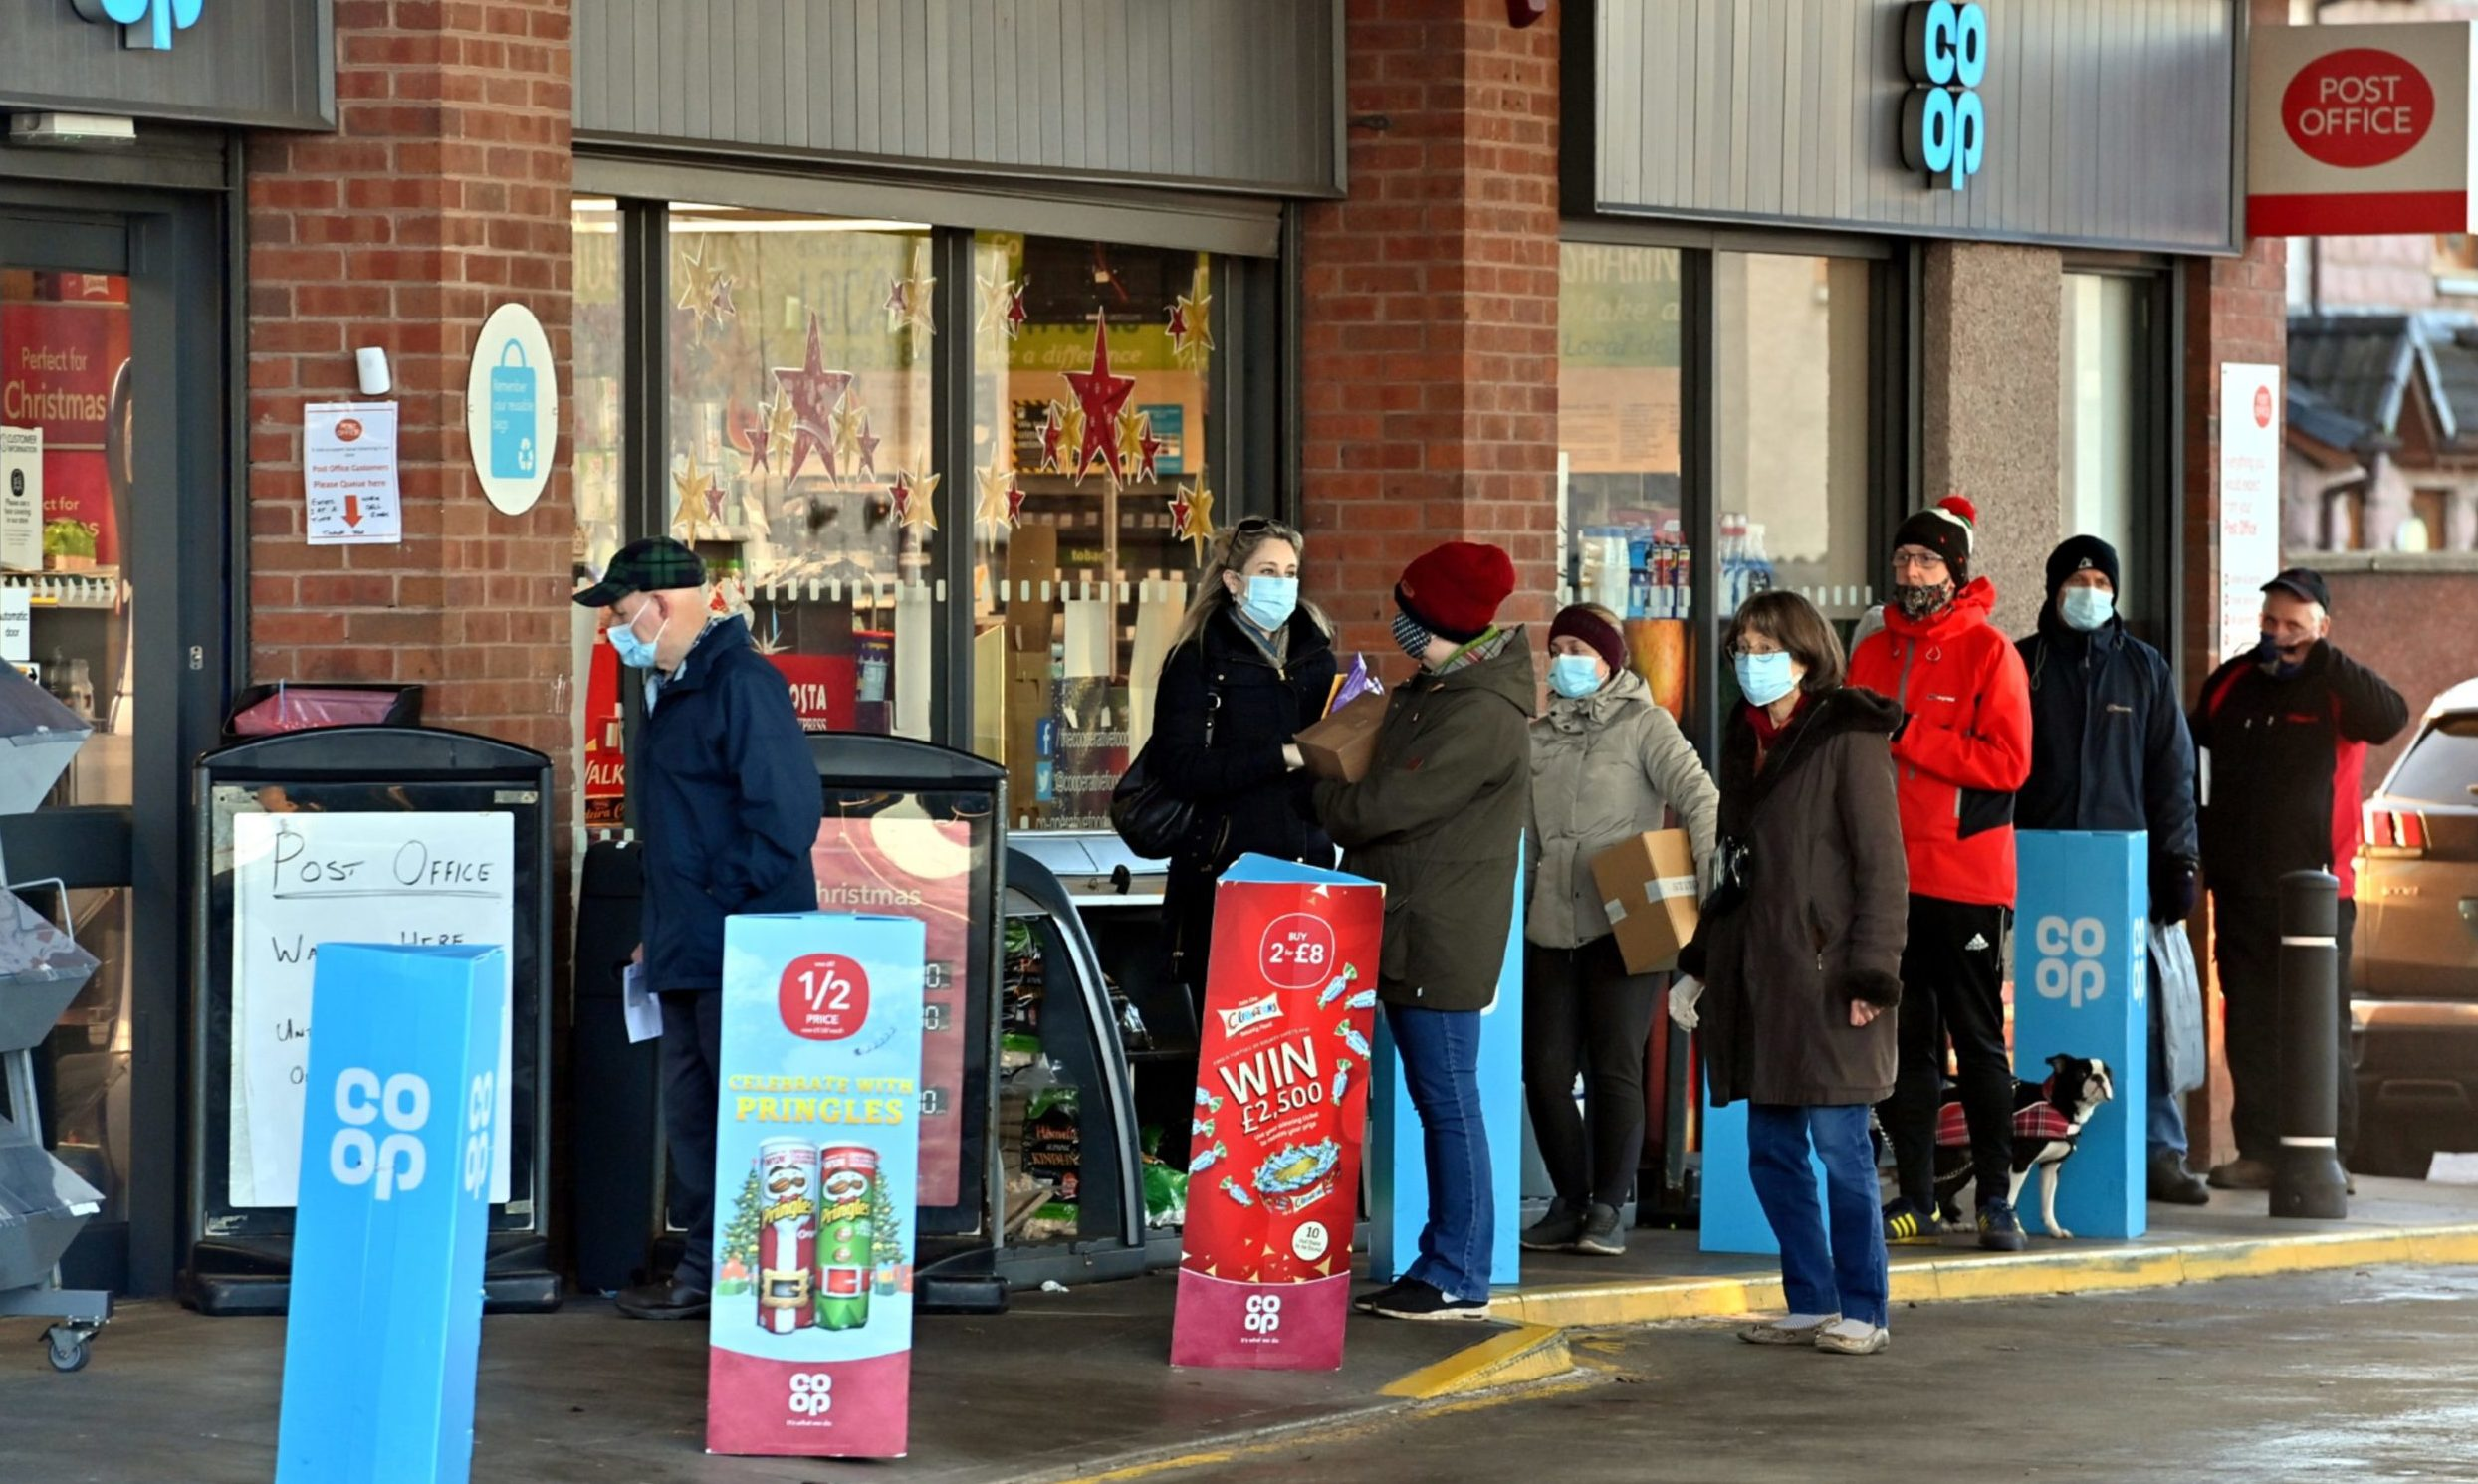 Queues formed outside the Post Office in Stonehaven, integrated into the Kirkton Road Co-Op petrol station, in the days before Christmas 2020.